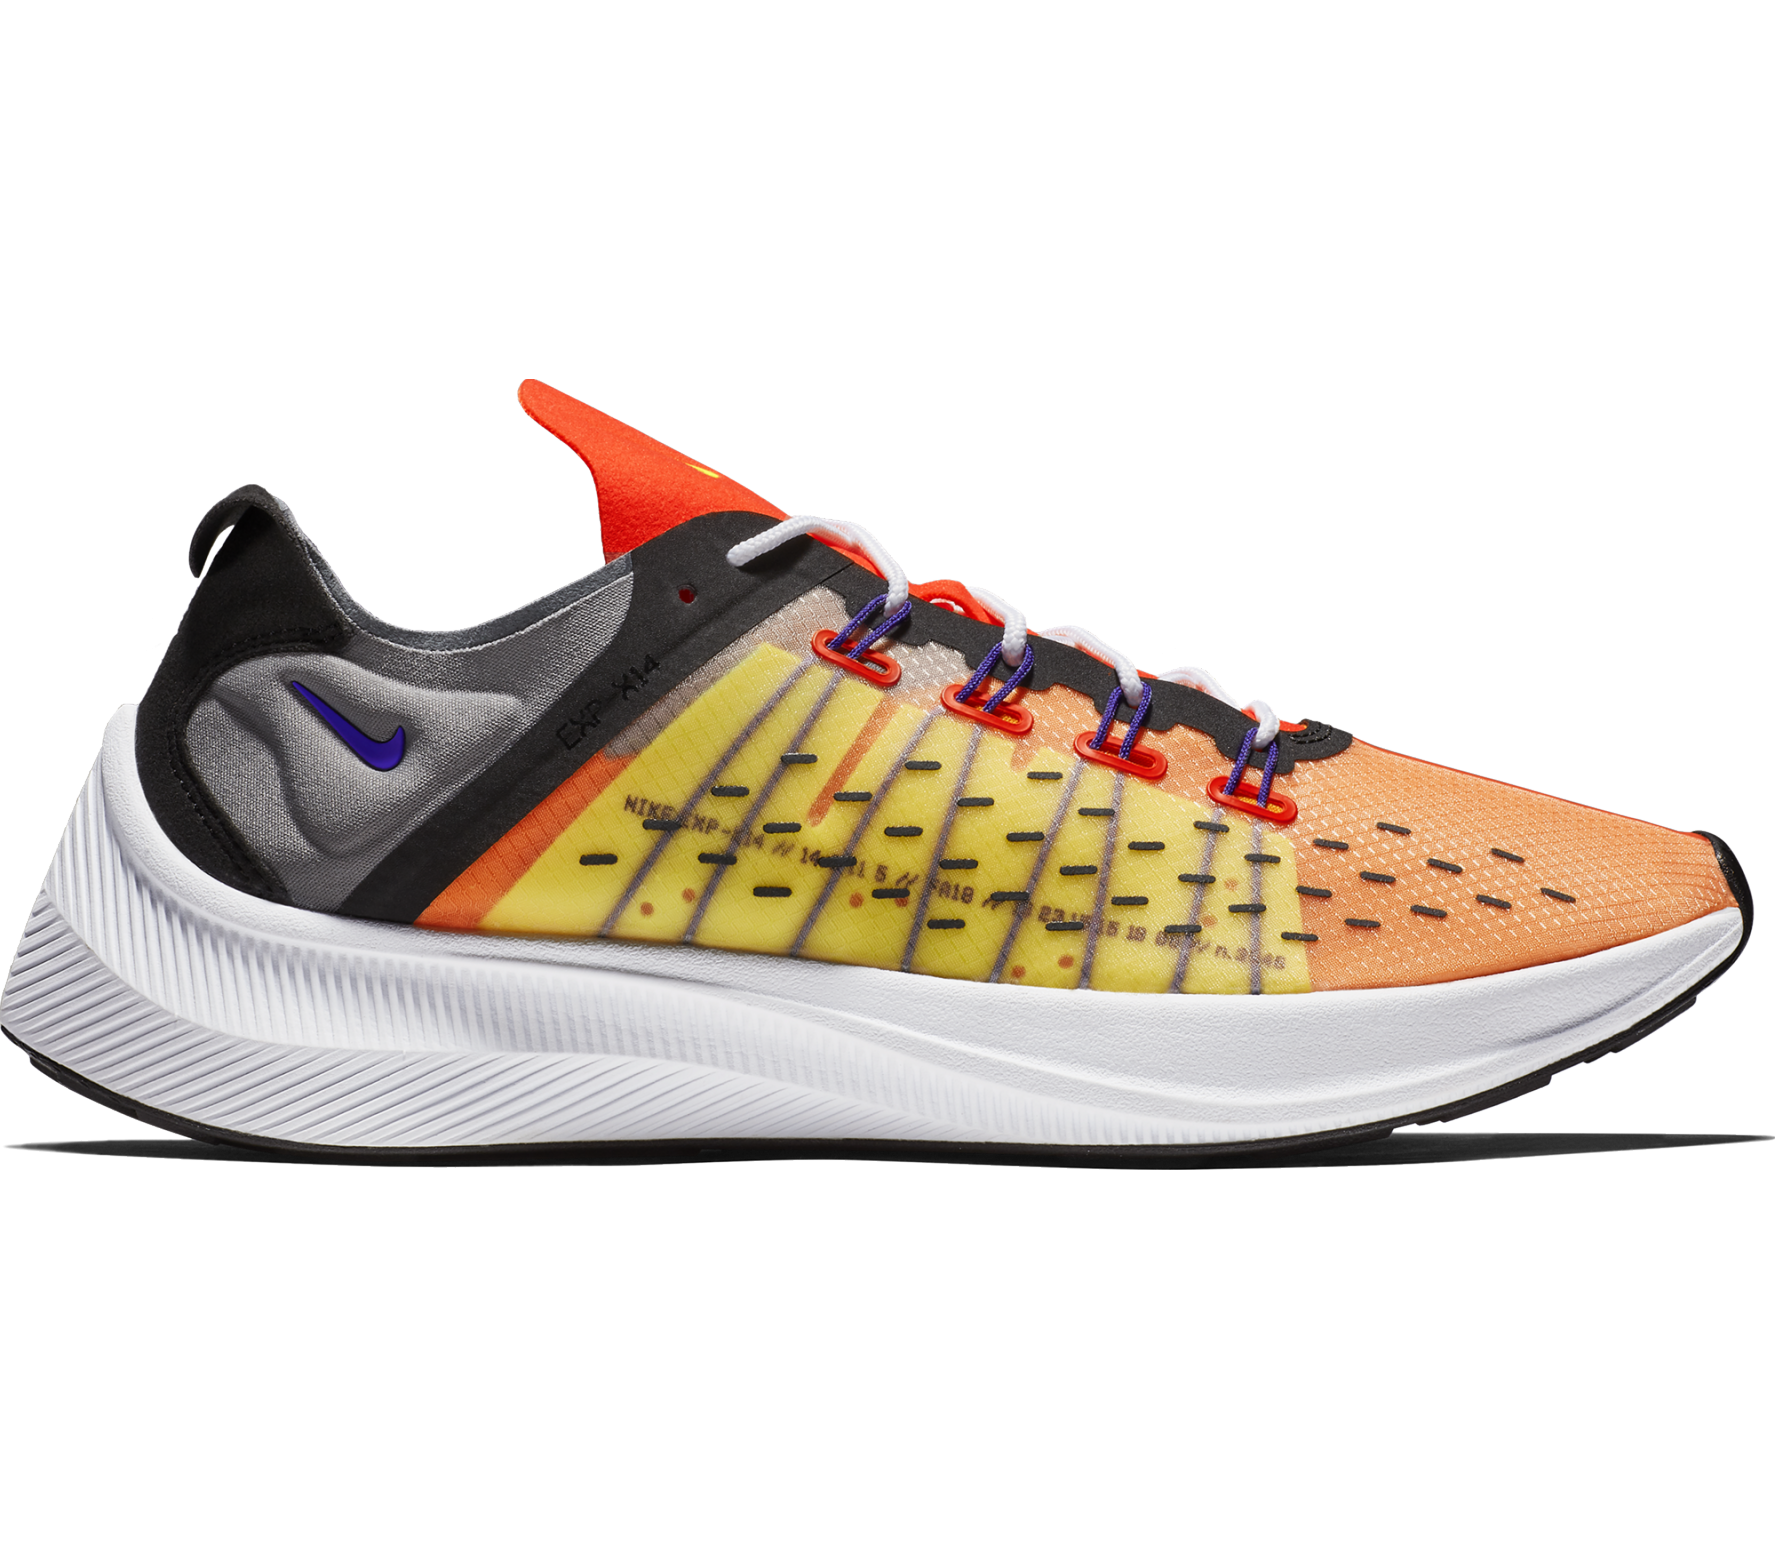 561020b0fcc5 Nike Sportswear EXP-X14 men's trainers (orange) online kaufen | Keller x